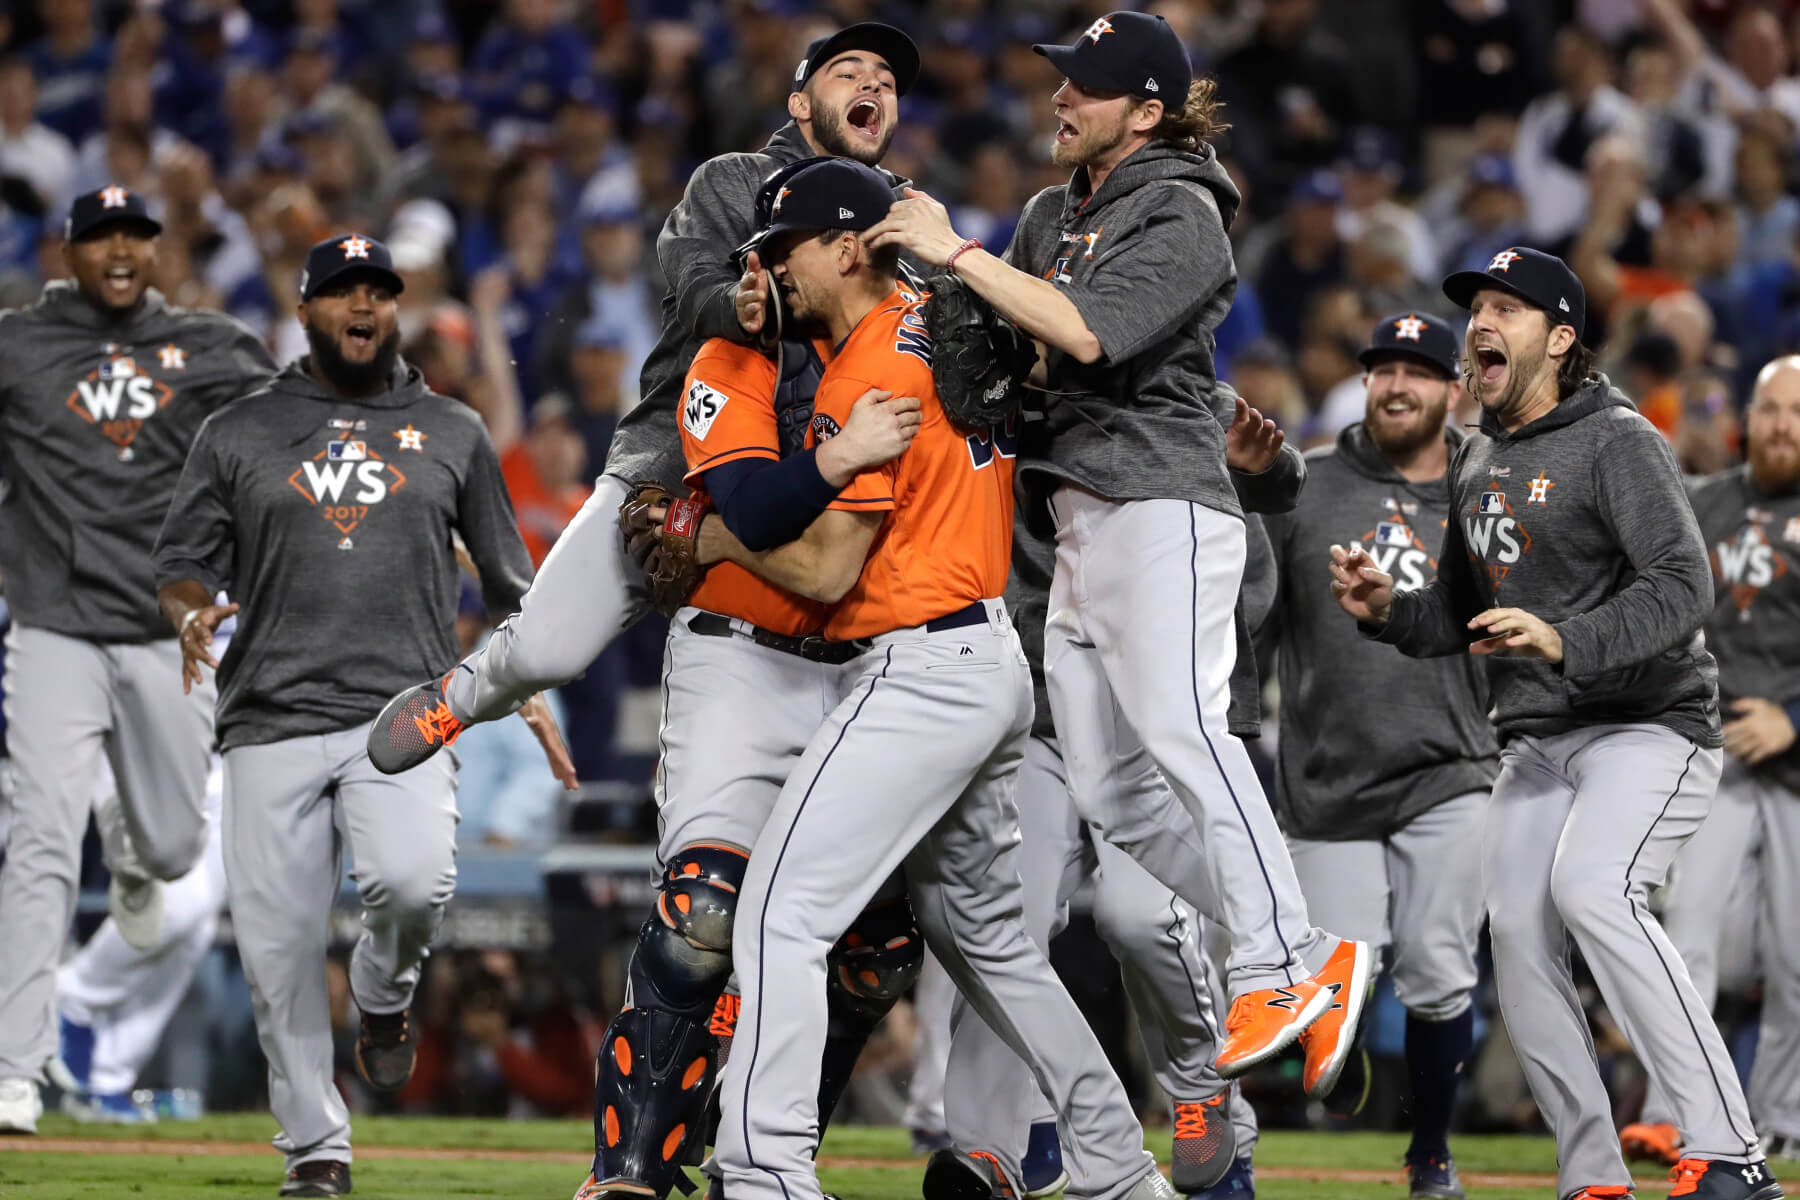 Astros celebrating on the field after winning the world series